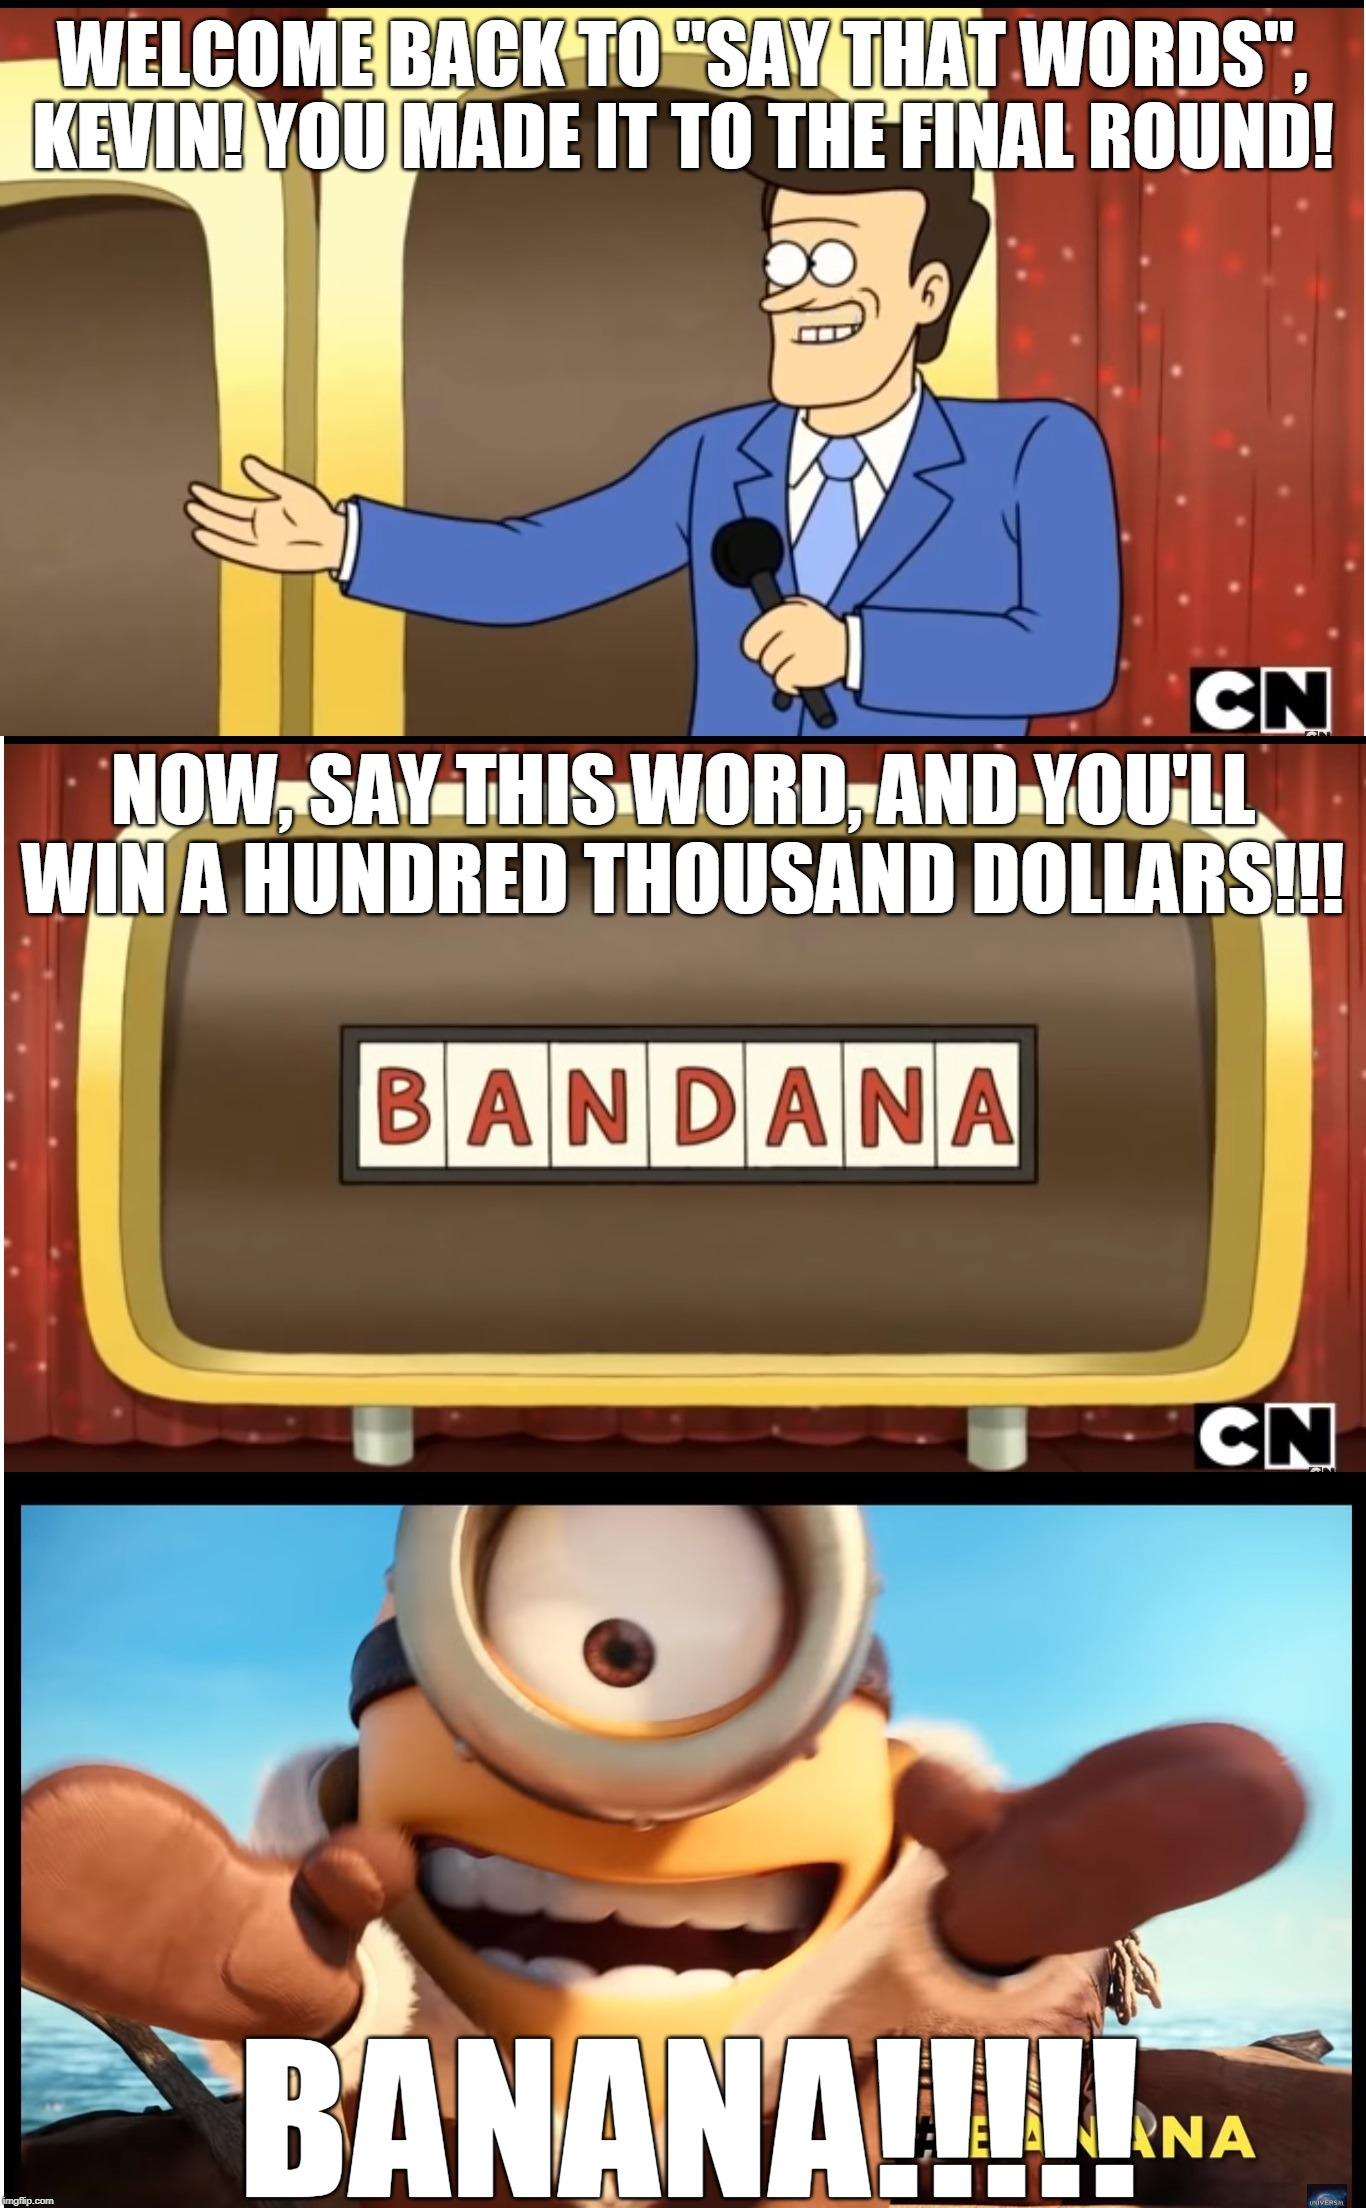 "Kevin Entered Say That Words! | WELCOME BACK TO ""SAY THAT WORDS"", KEVIN! YOU MADE IT TO THE FINAL ROUND! BANANA!!!!! NOW, SAY THIS WORD, AND YOU'LL WIN A HUNDRED THOUSAND D 